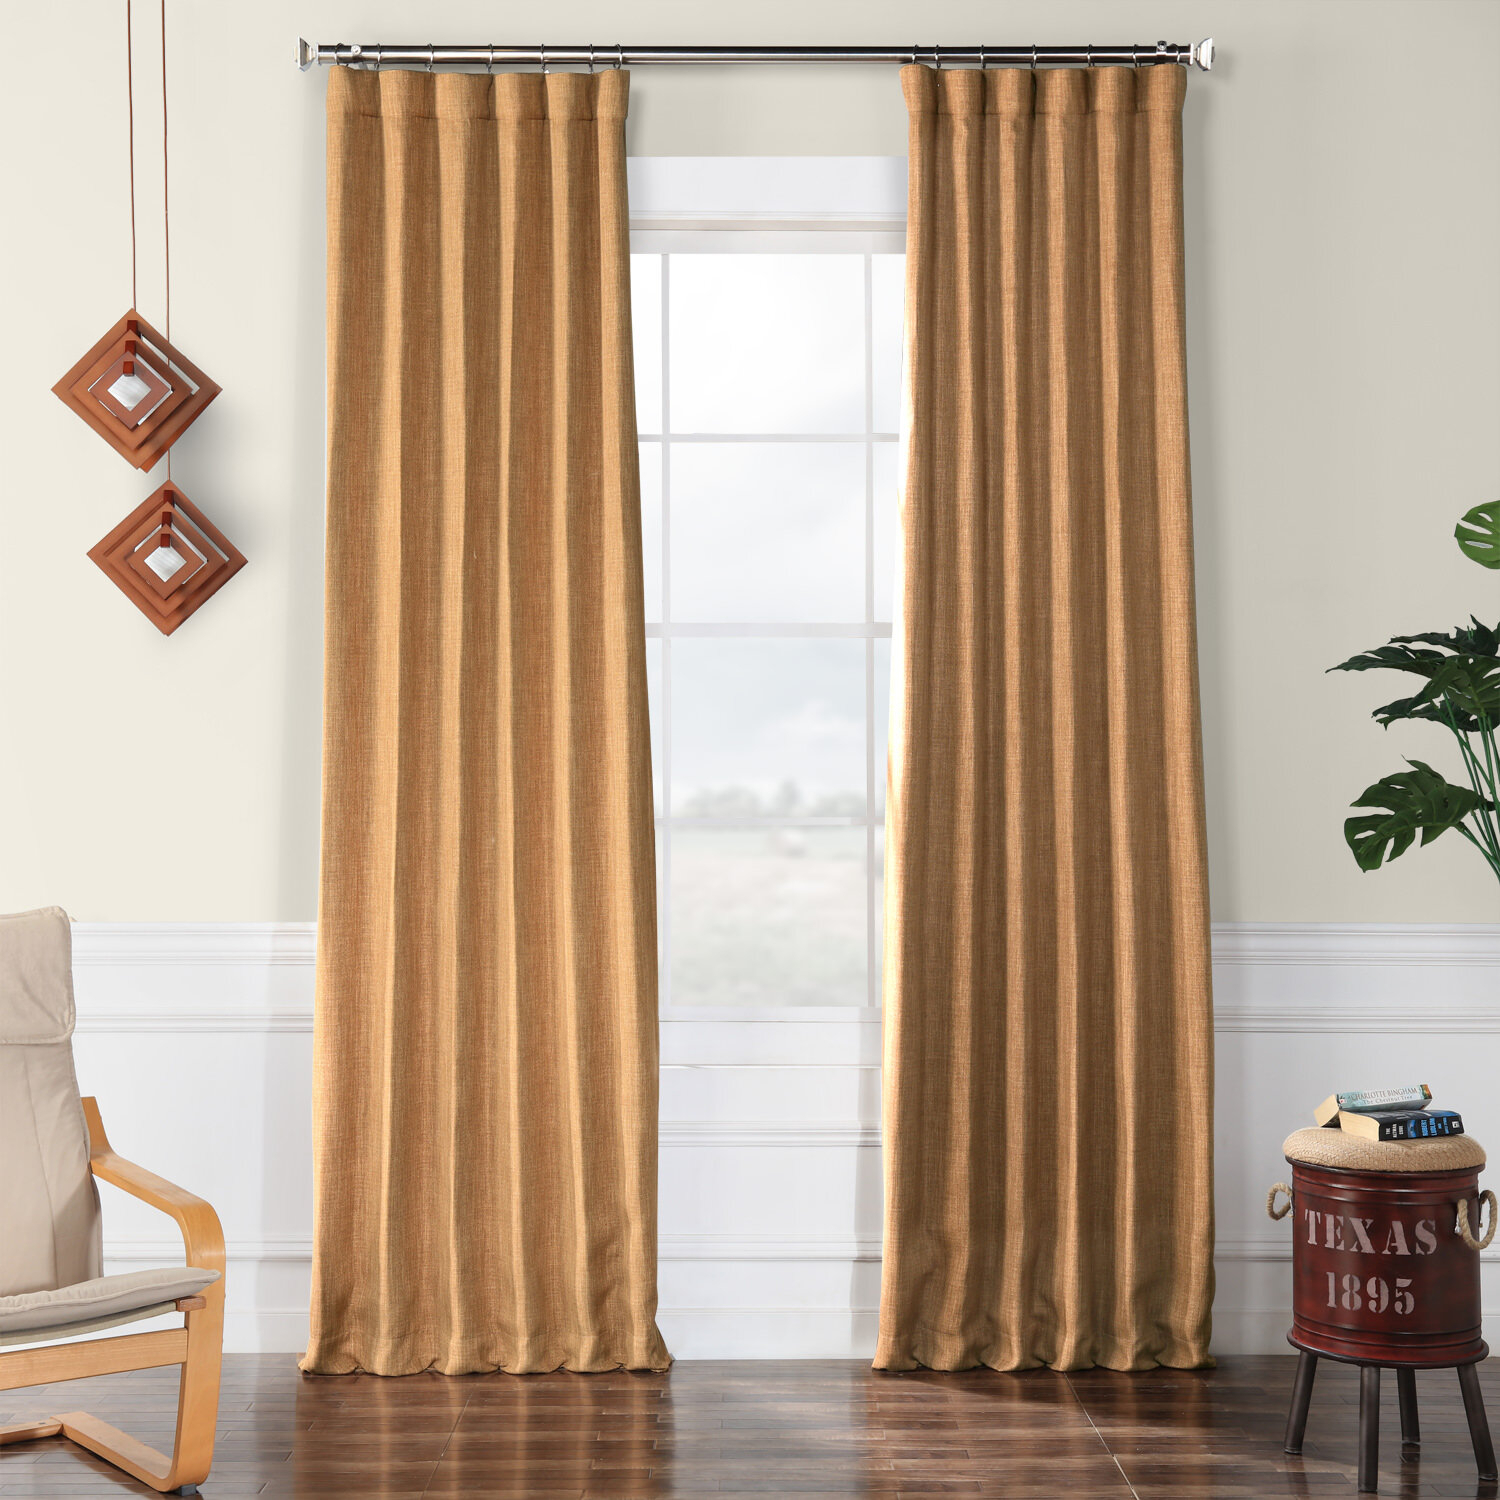 Clem Blackout Rod Pocket Single Curtain Panel & Reviews Inside Faux Linen Extra Wide Blackout Curtains (View 19 of 20)